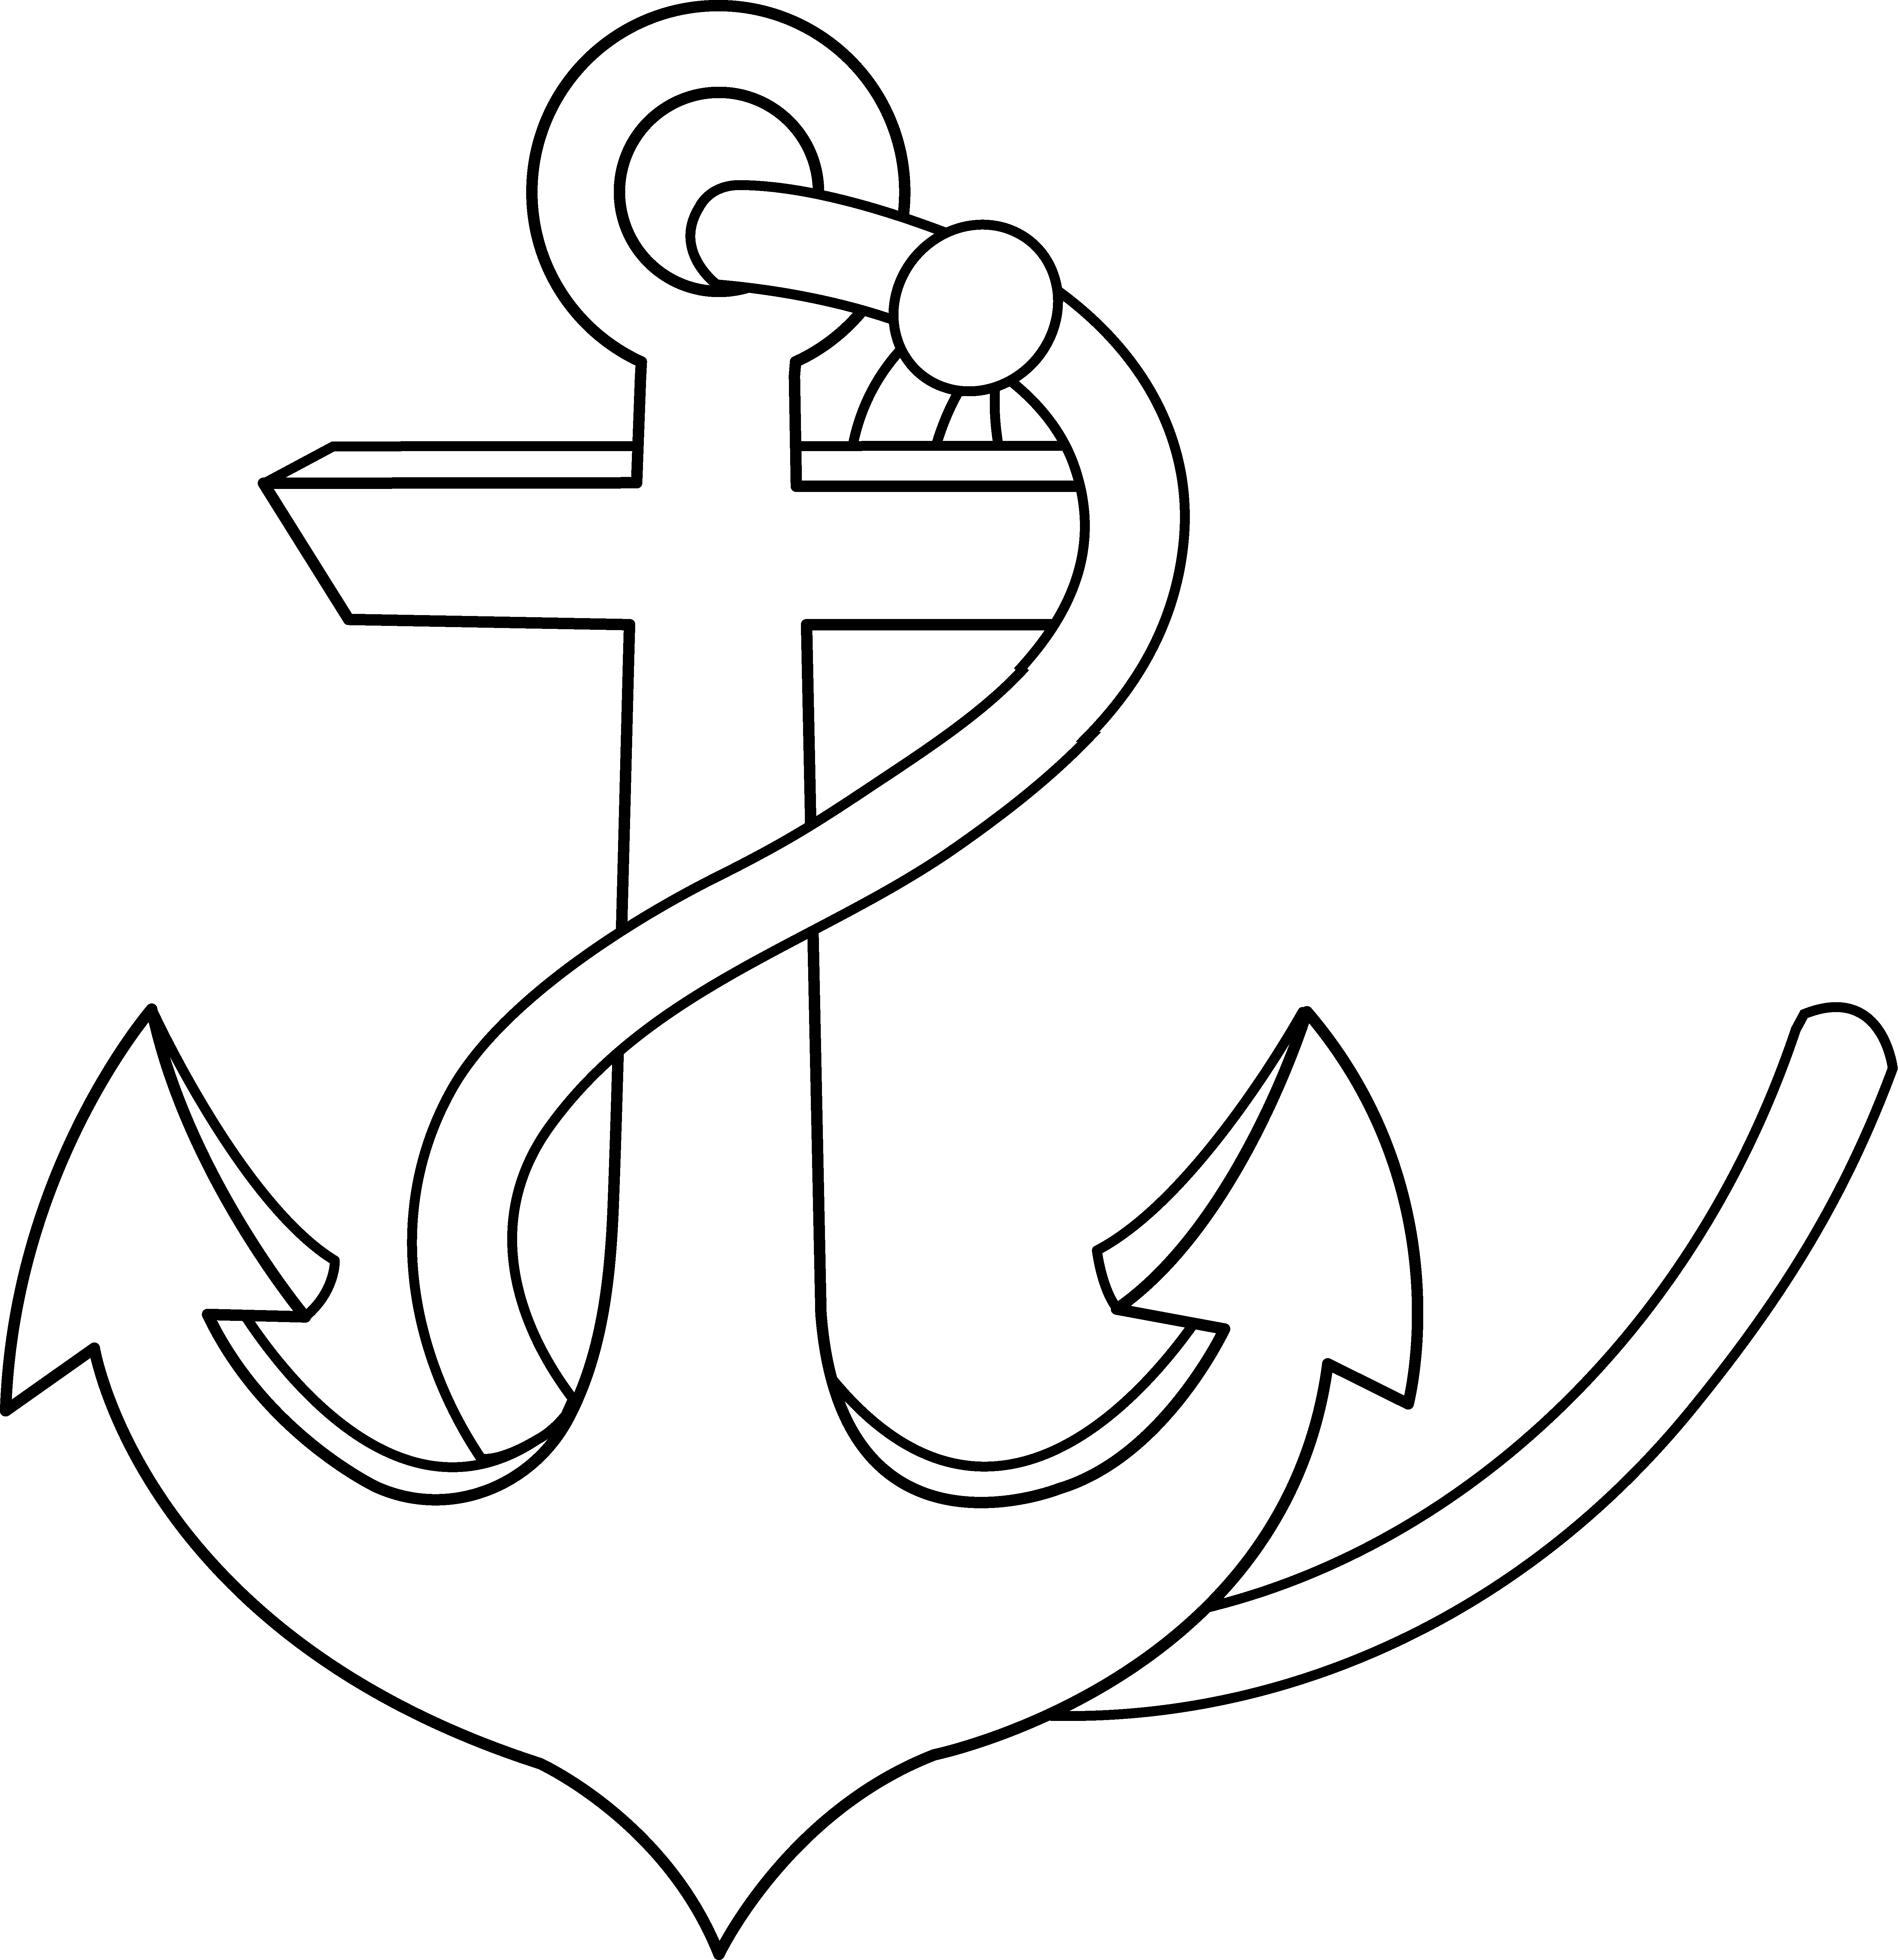 Rope clipart sea. Free anchor images download